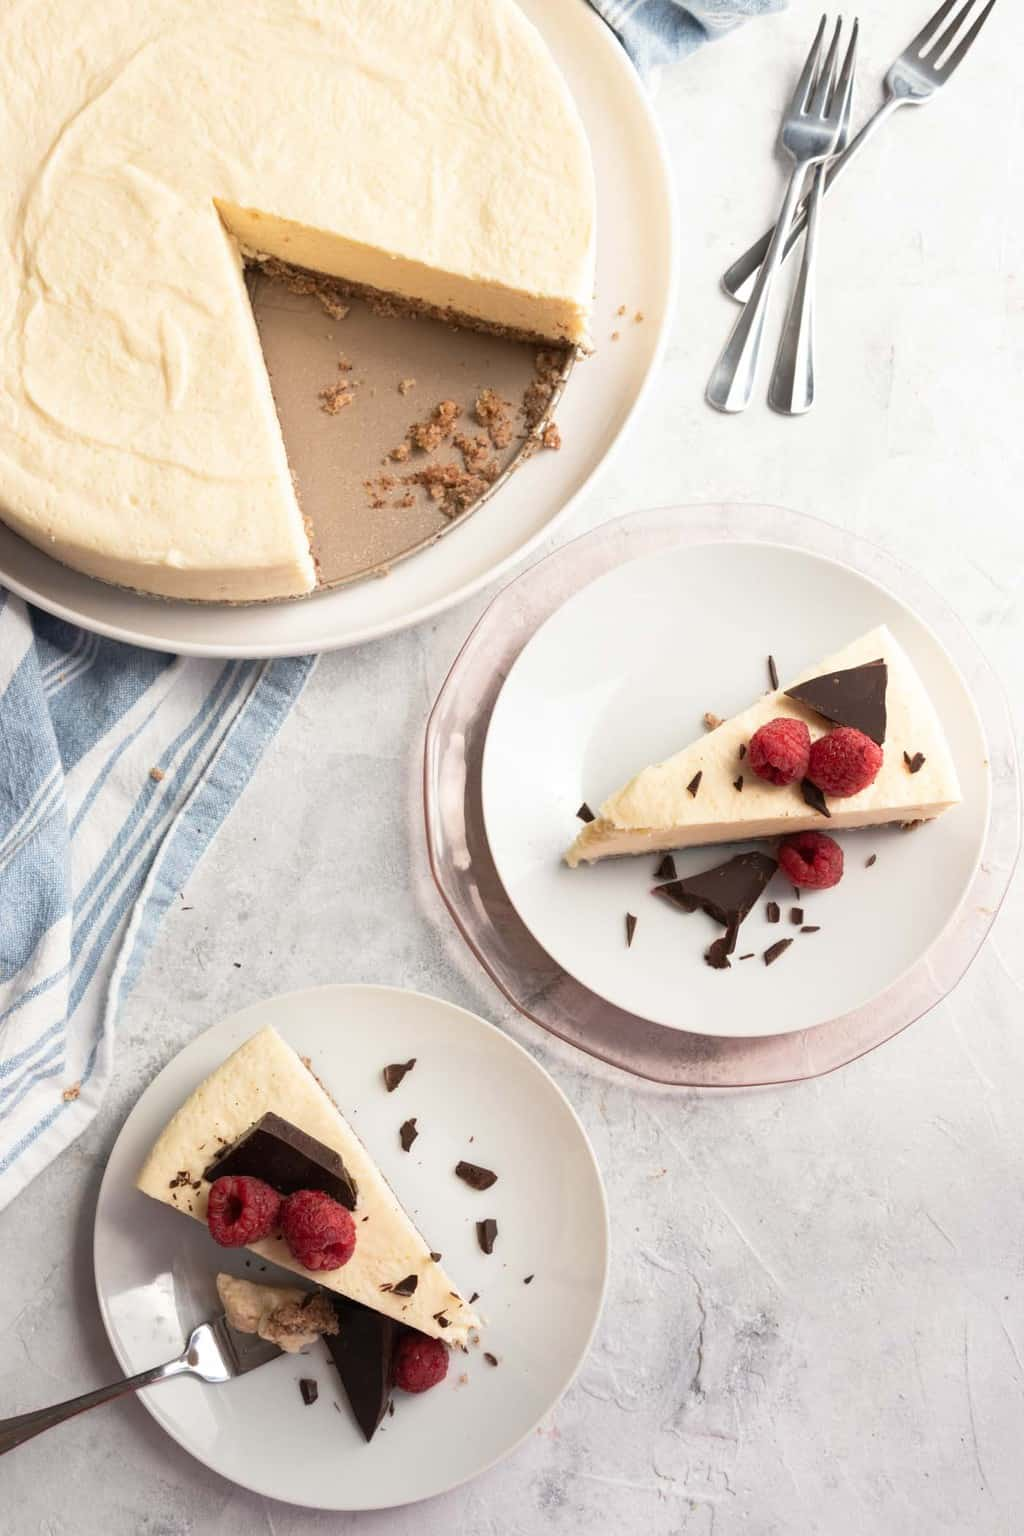 photo of a healthy gluten free low carb cheesecake by top Houston lifestyle blogger Ashley Rose of Sugar & Cloth